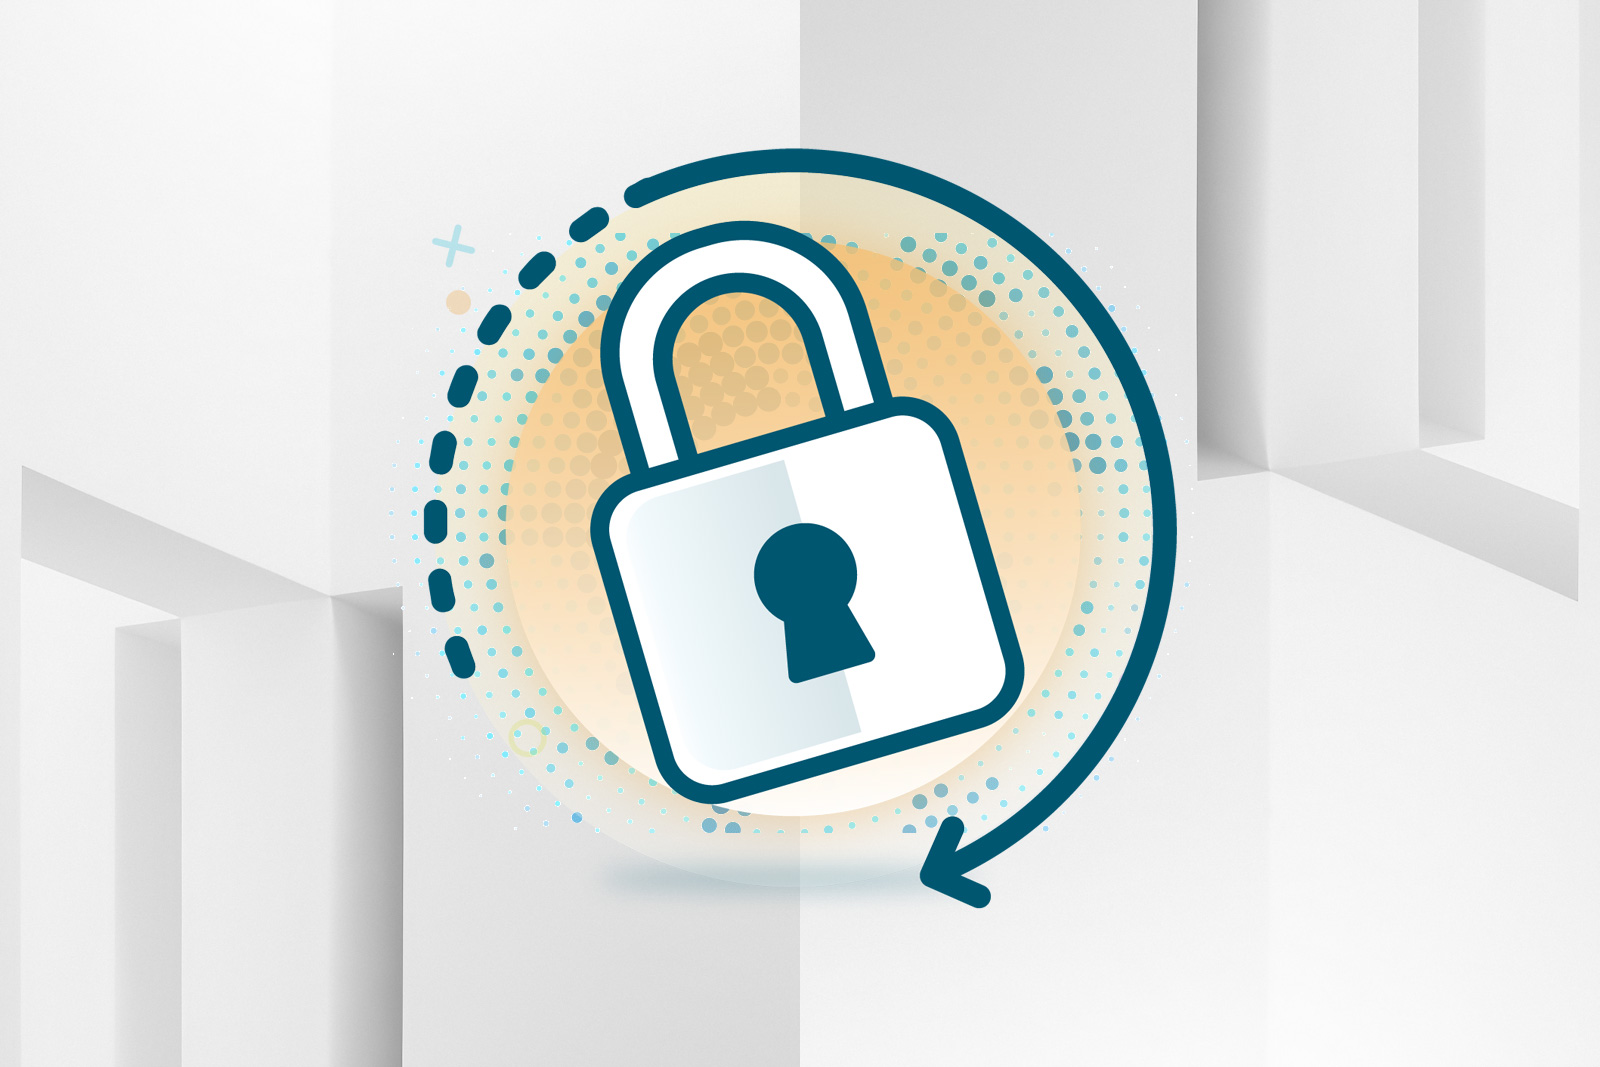 Execs concerned about software supply chain security, but not taking action